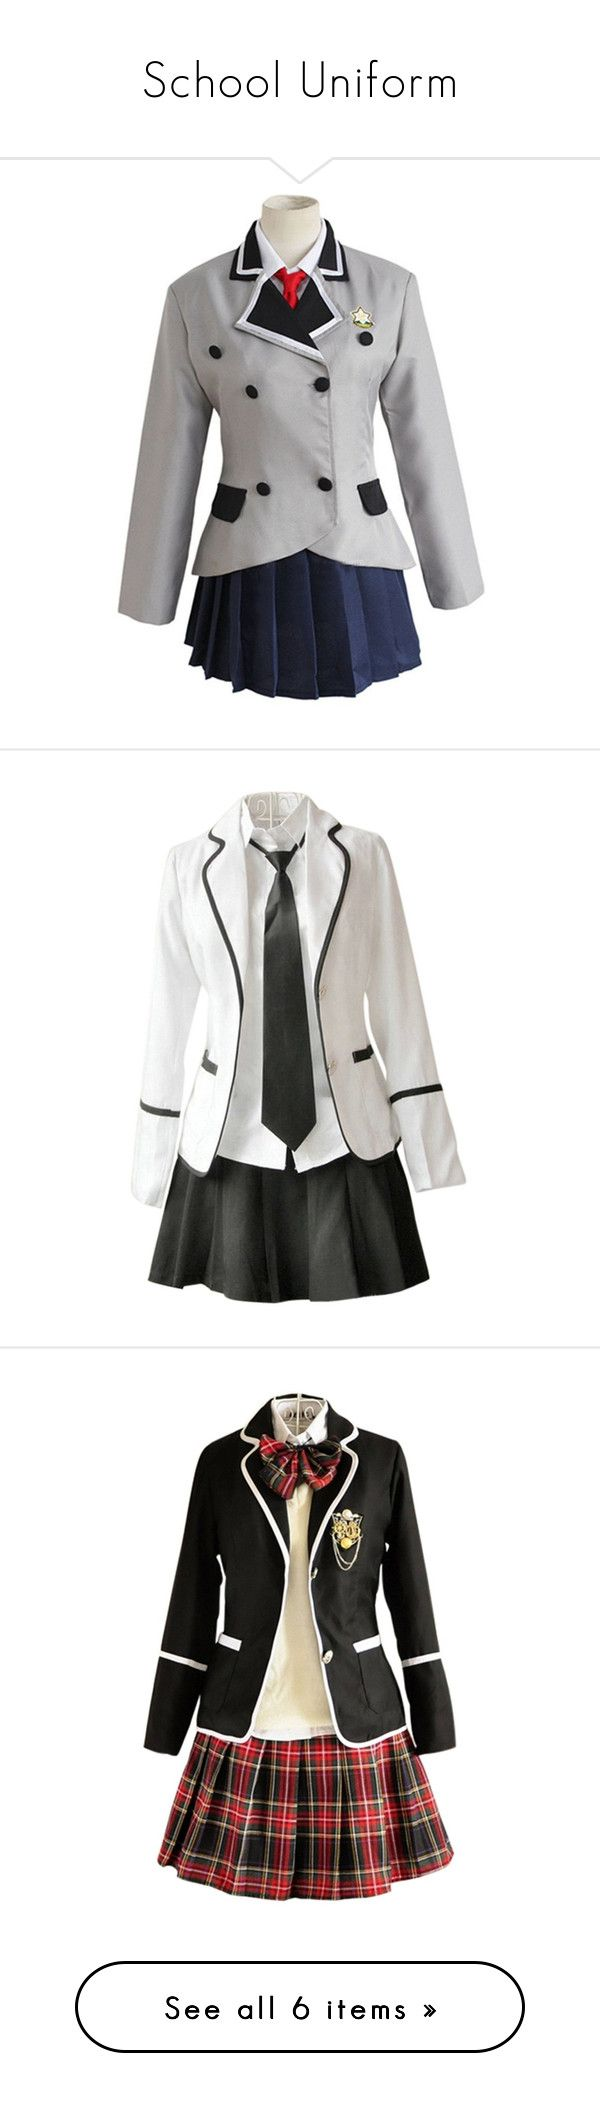 """School Uniform"" by bubble-loves-you ❤ liked on Polyvore featuring cosplay, dresses, other, outfit, anime, misc and school uniform"